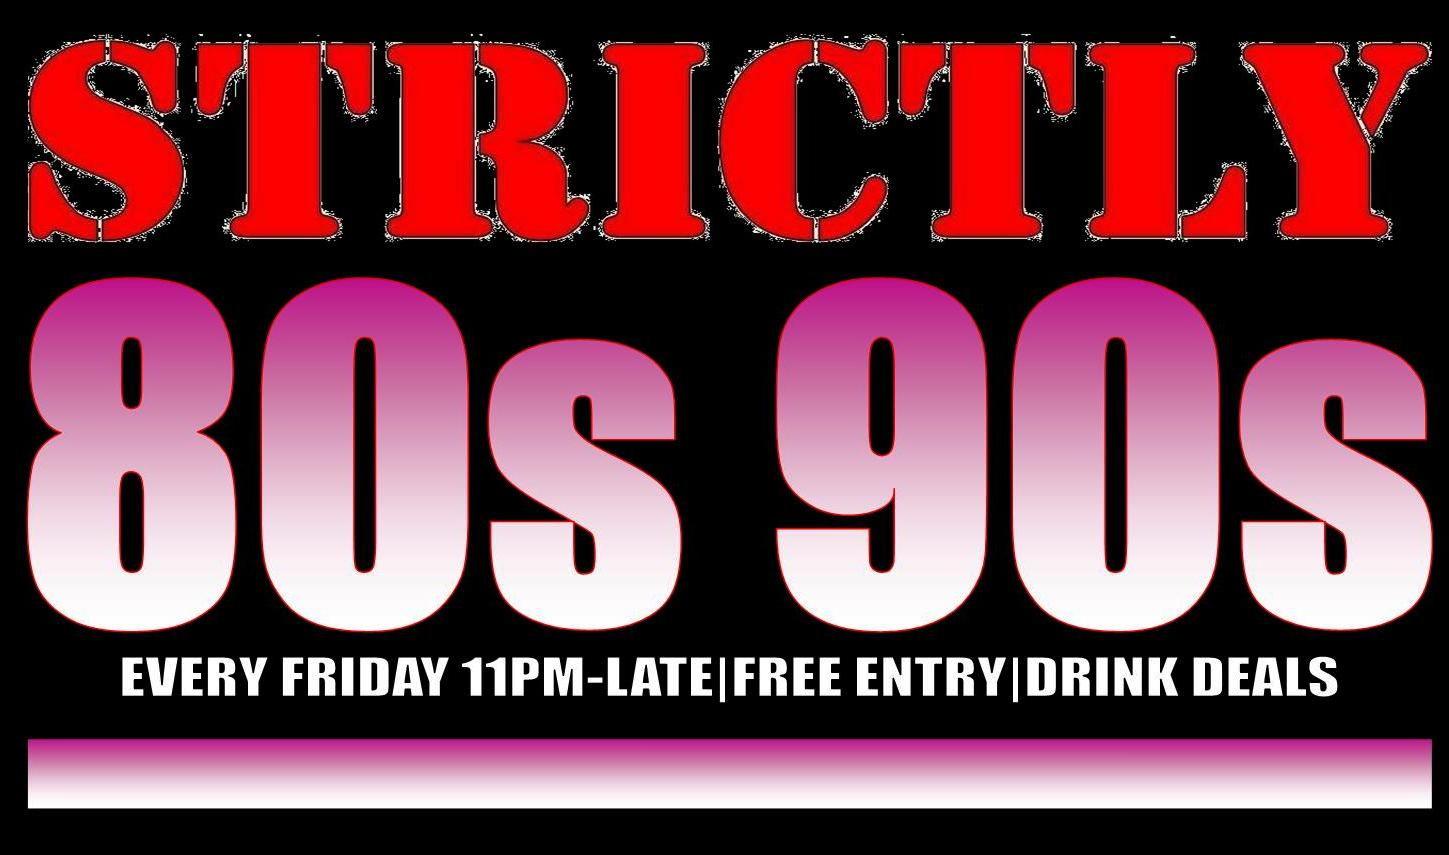 Strictly 80s 90s